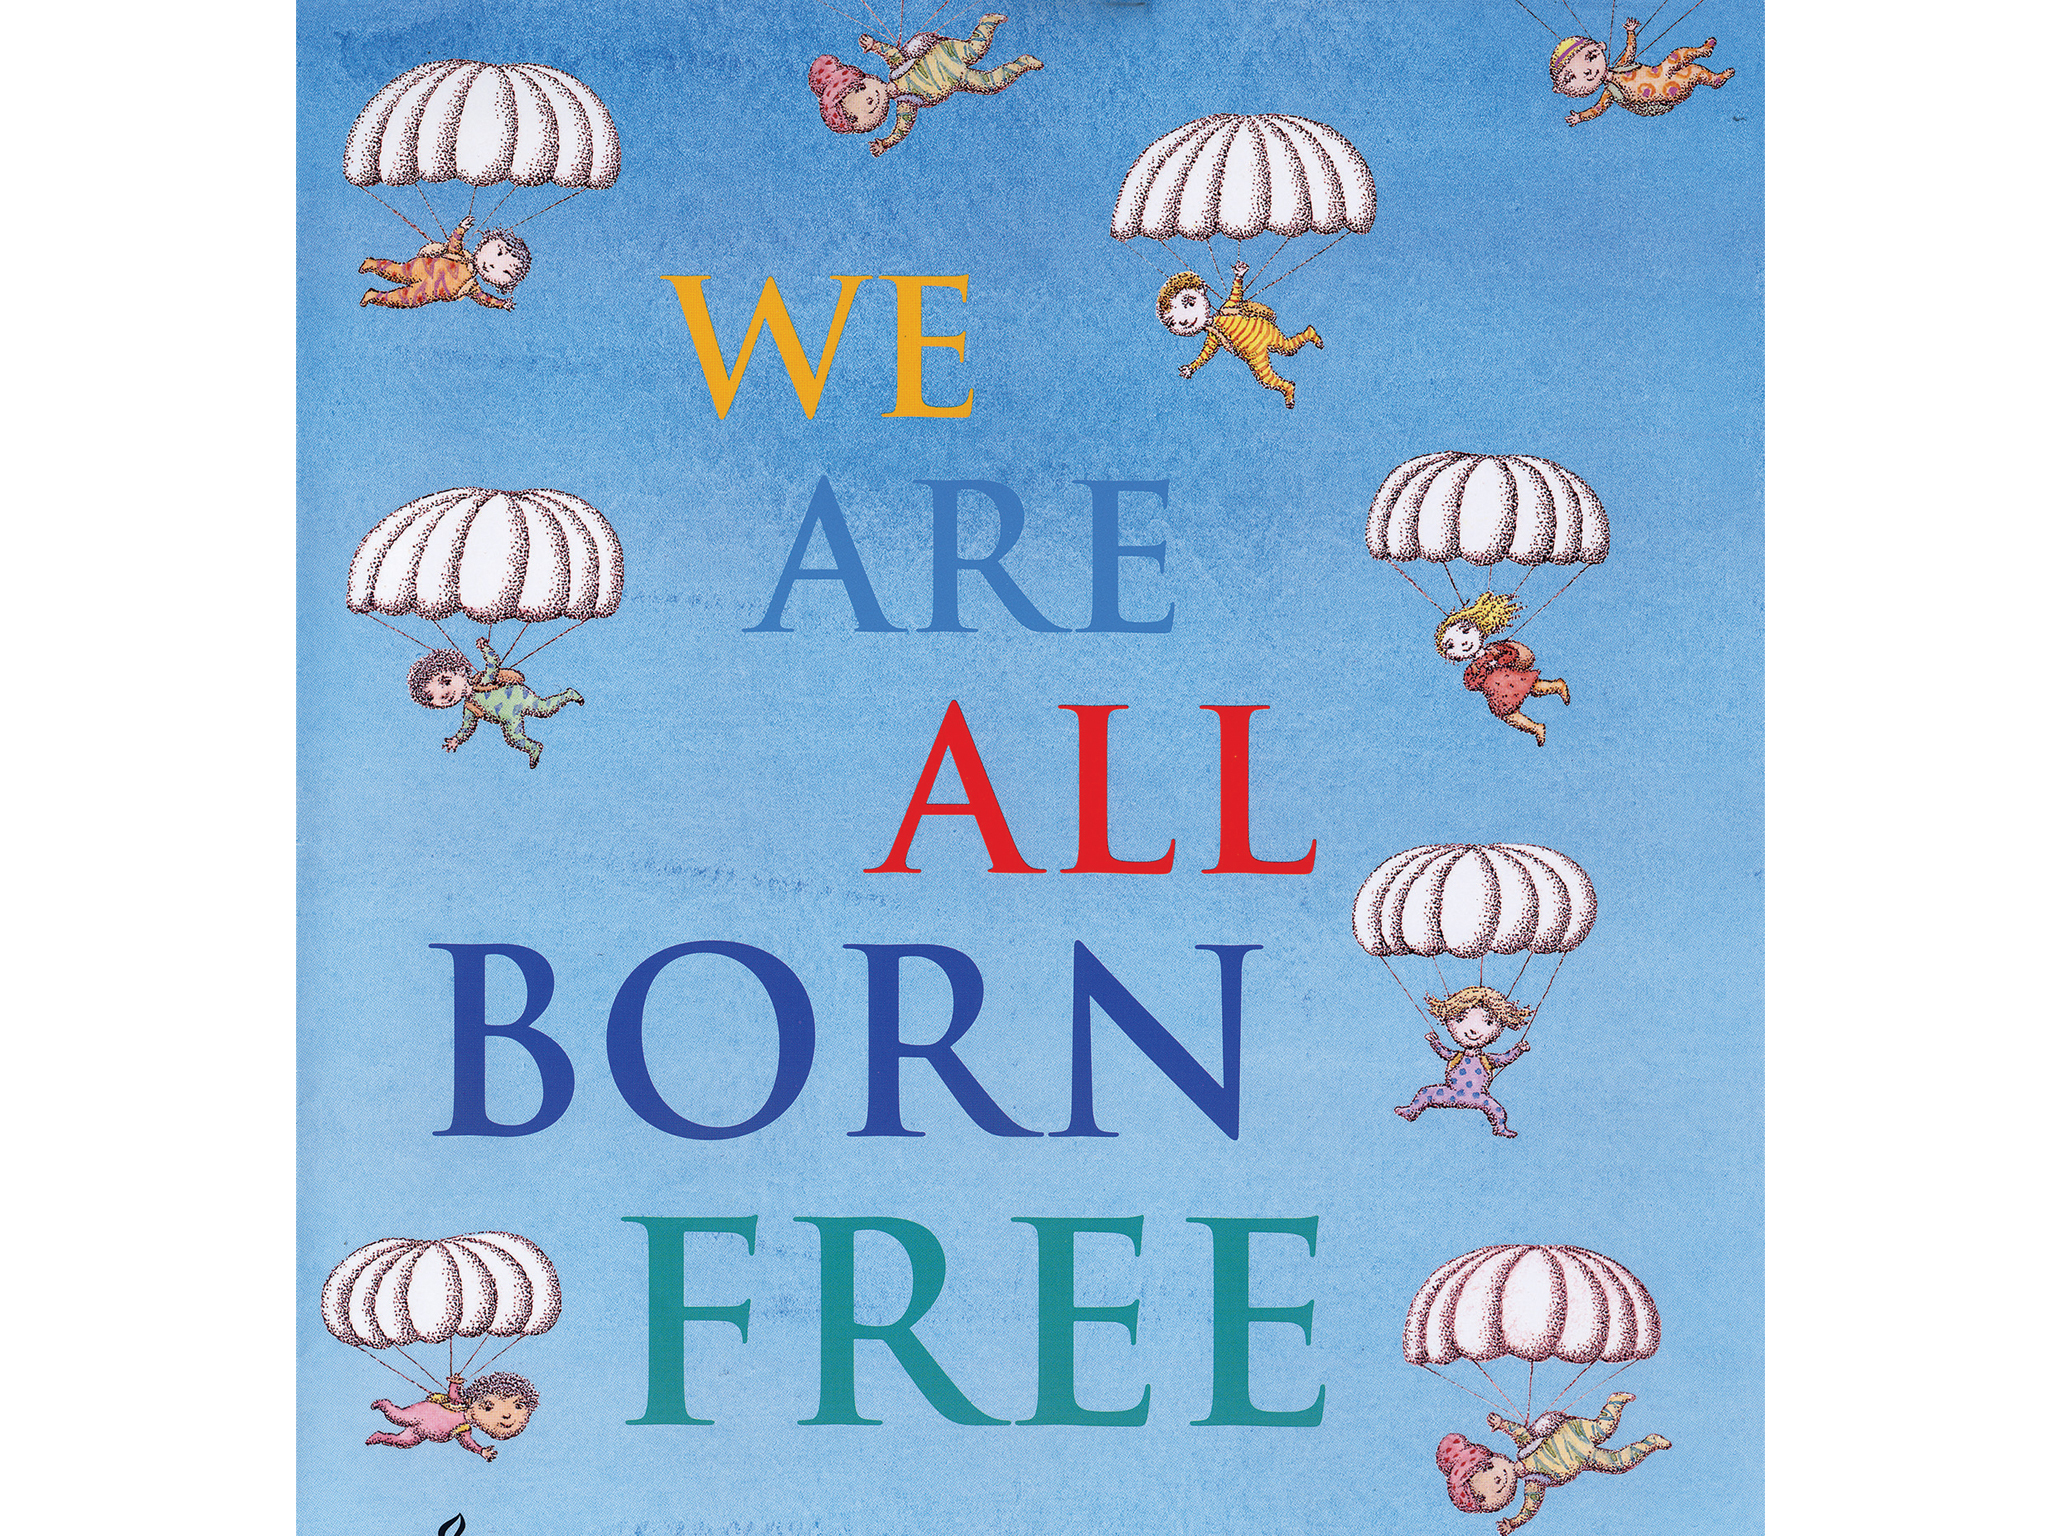 100 best children's books: We are all born free